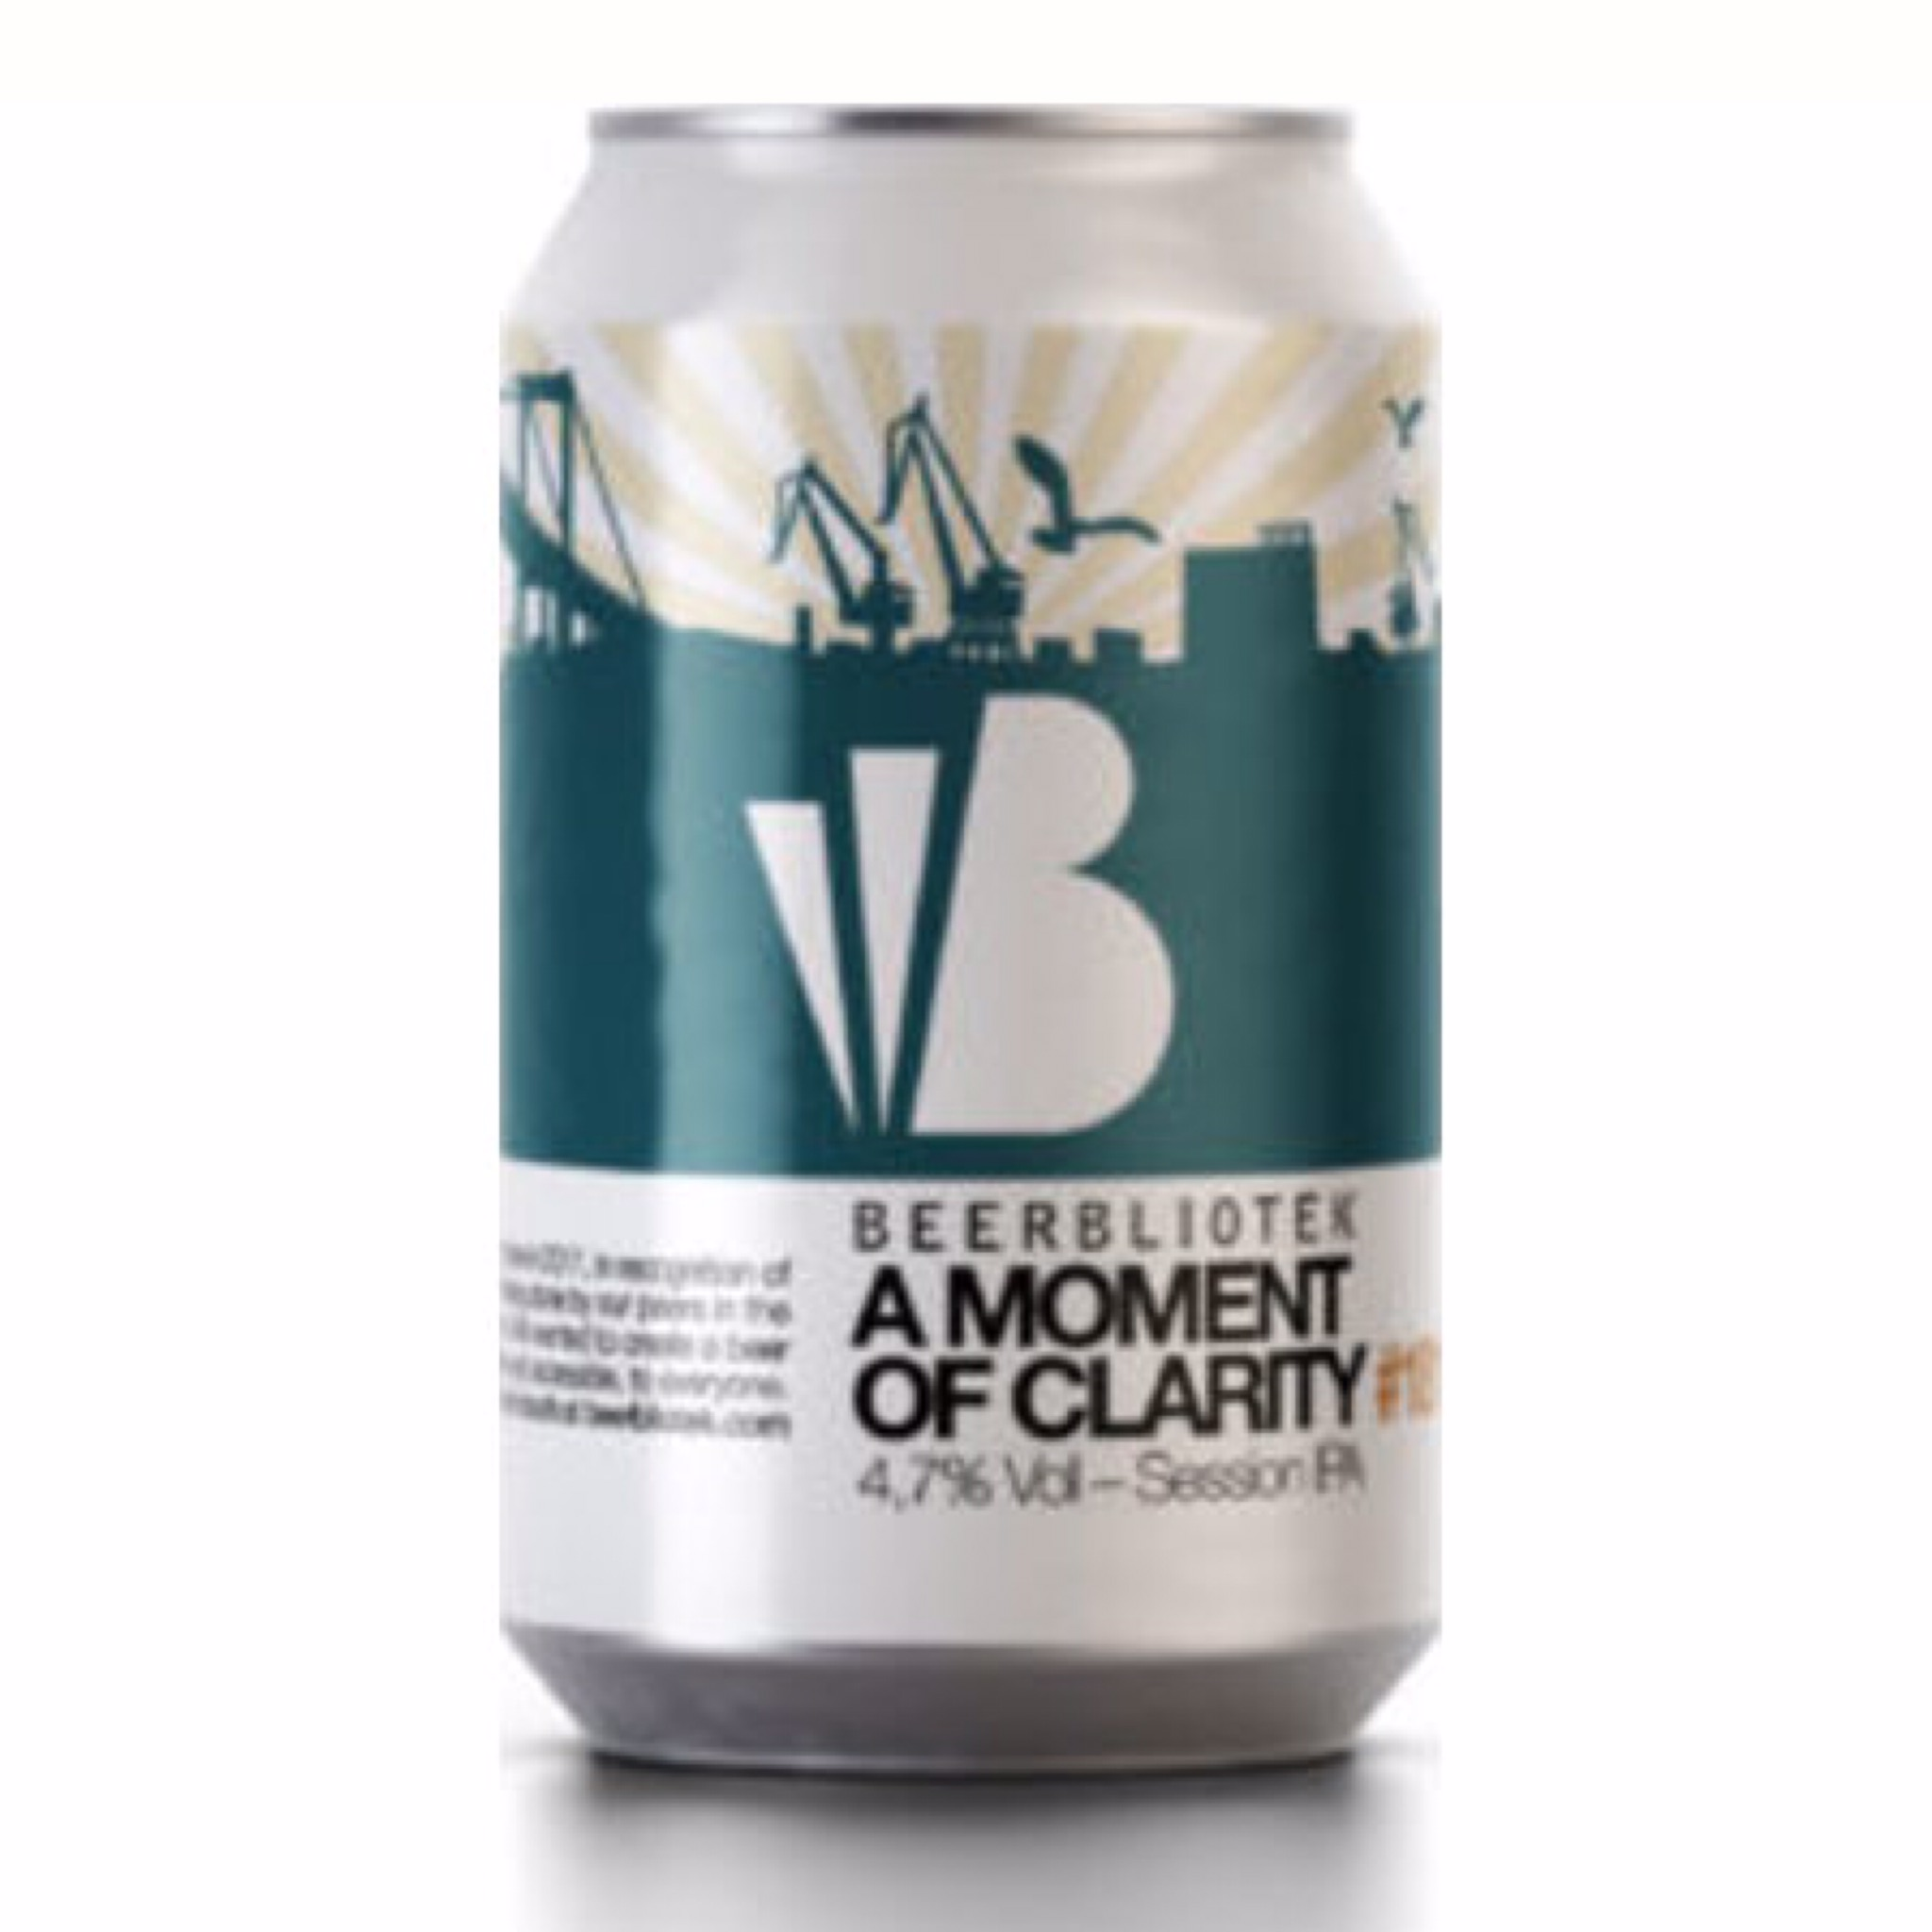 A Moment of Clarity Session IPA 4.7% 330ml Beerbliotek